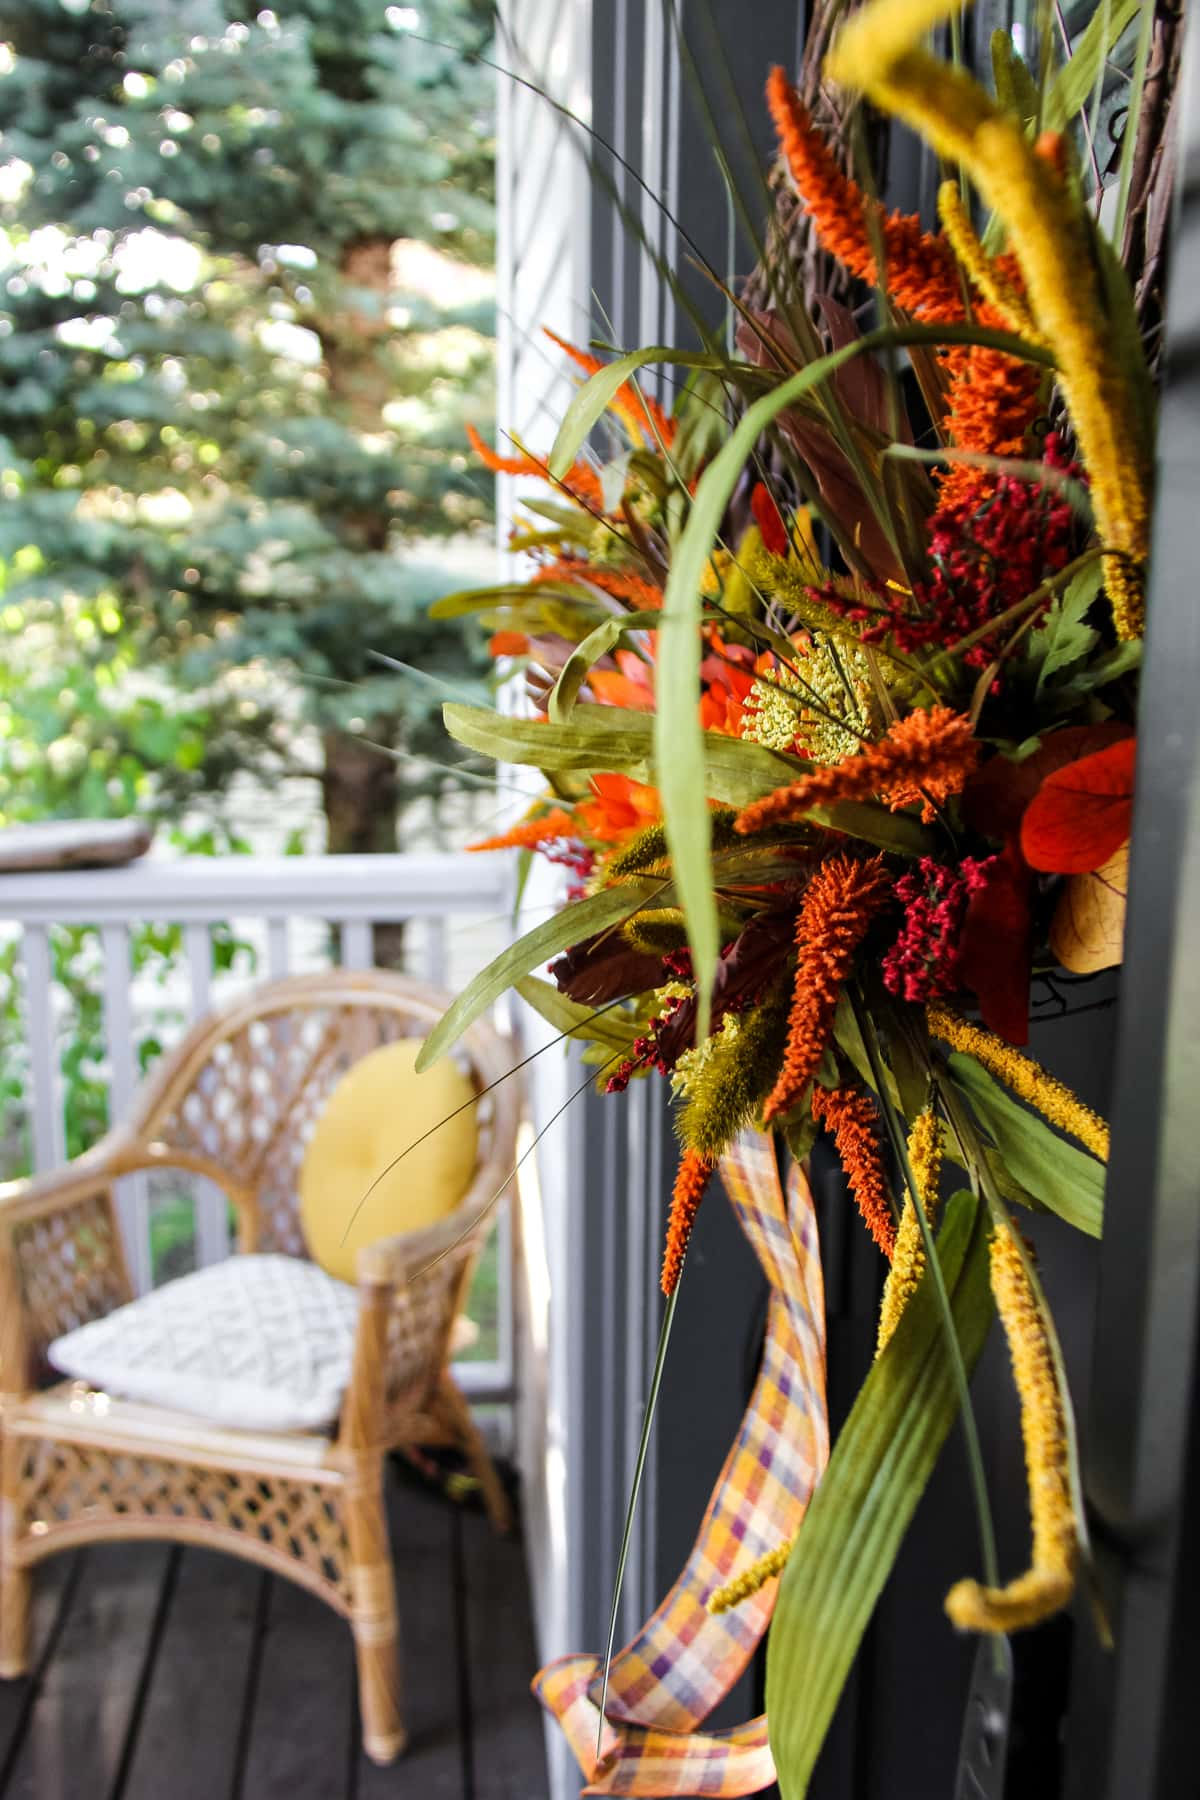 a side view of a fall wreath hanging on a black front door. in the background is a wicker chair with beige and yellow pillows